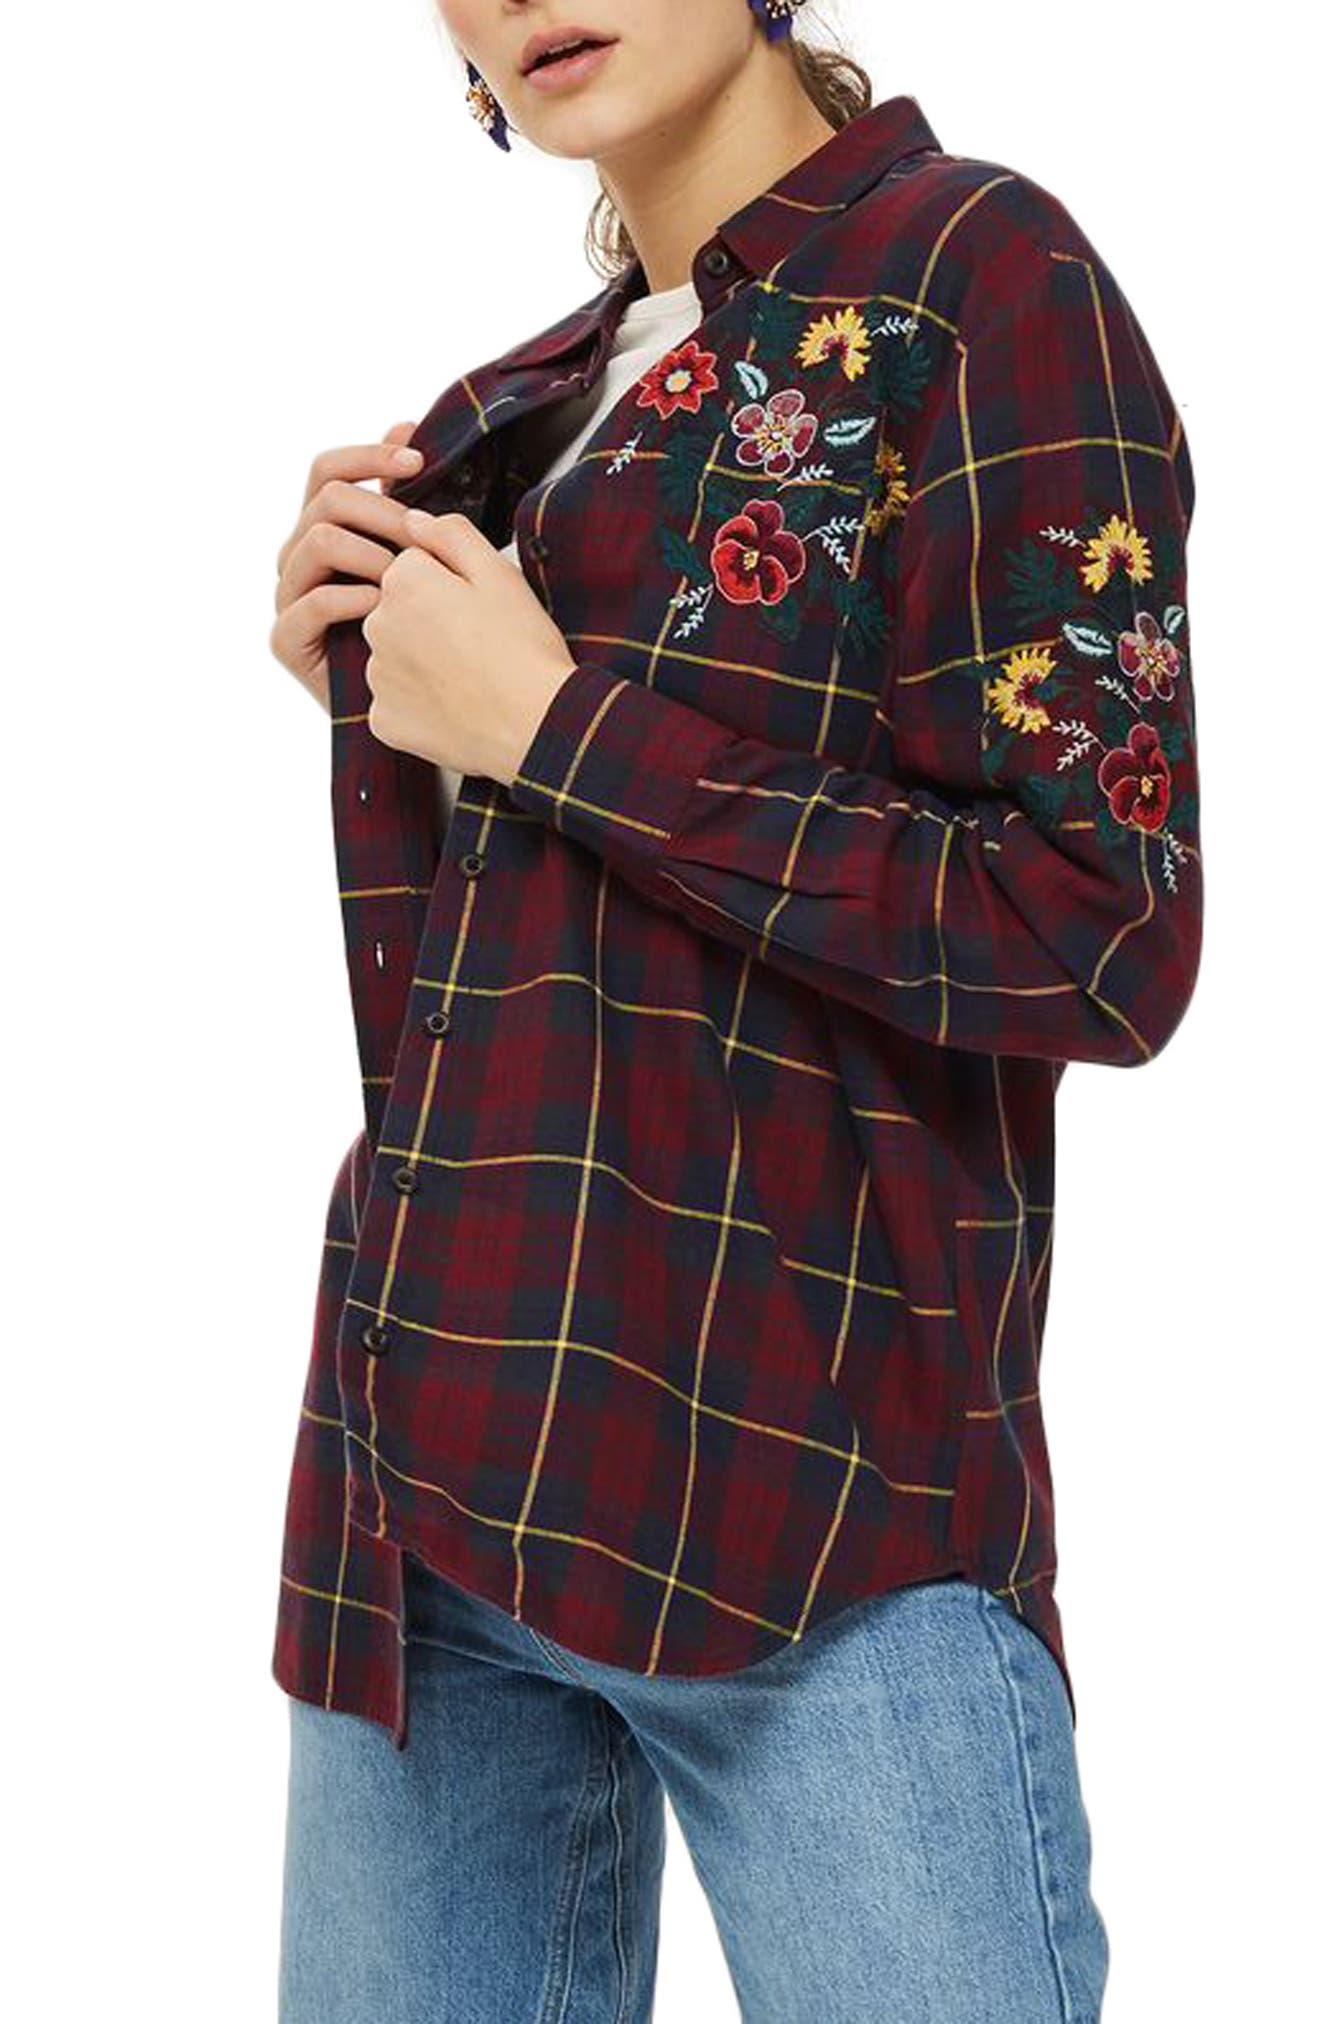 Floral Embroidered Check Shirt,                             Alternate thumbnail 3, color,                             Navy Blue Multi 2